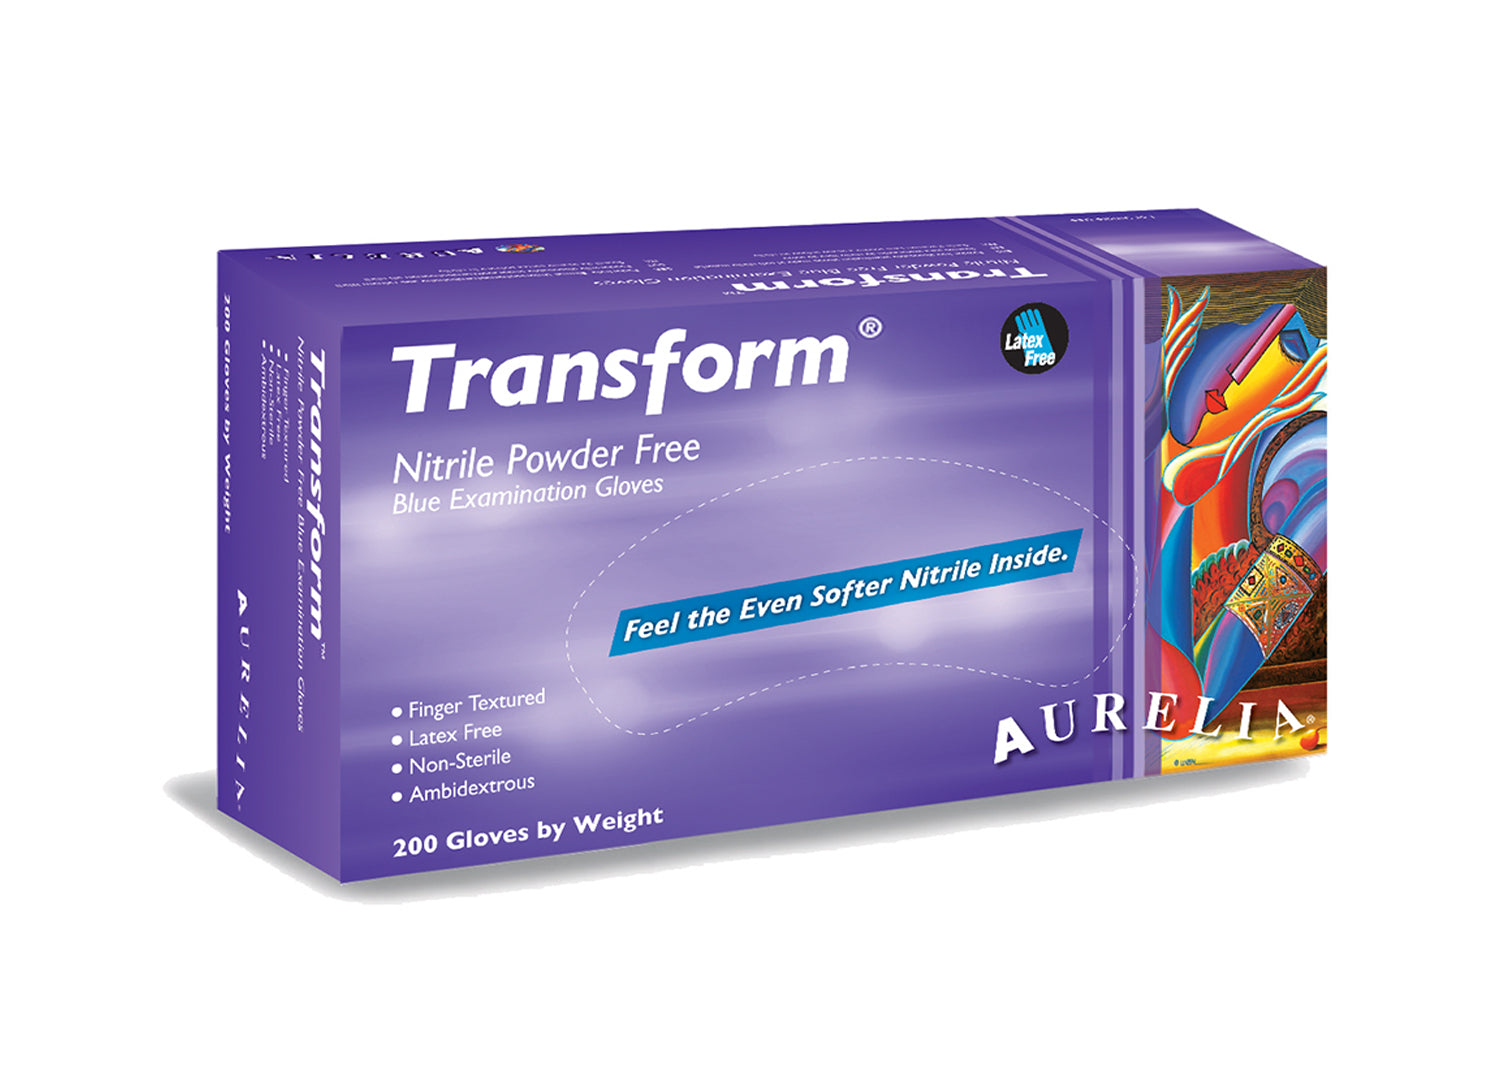 Aurelia chemo PF Exam nitrile Gloves. 200pcs/box.Overstock price drop